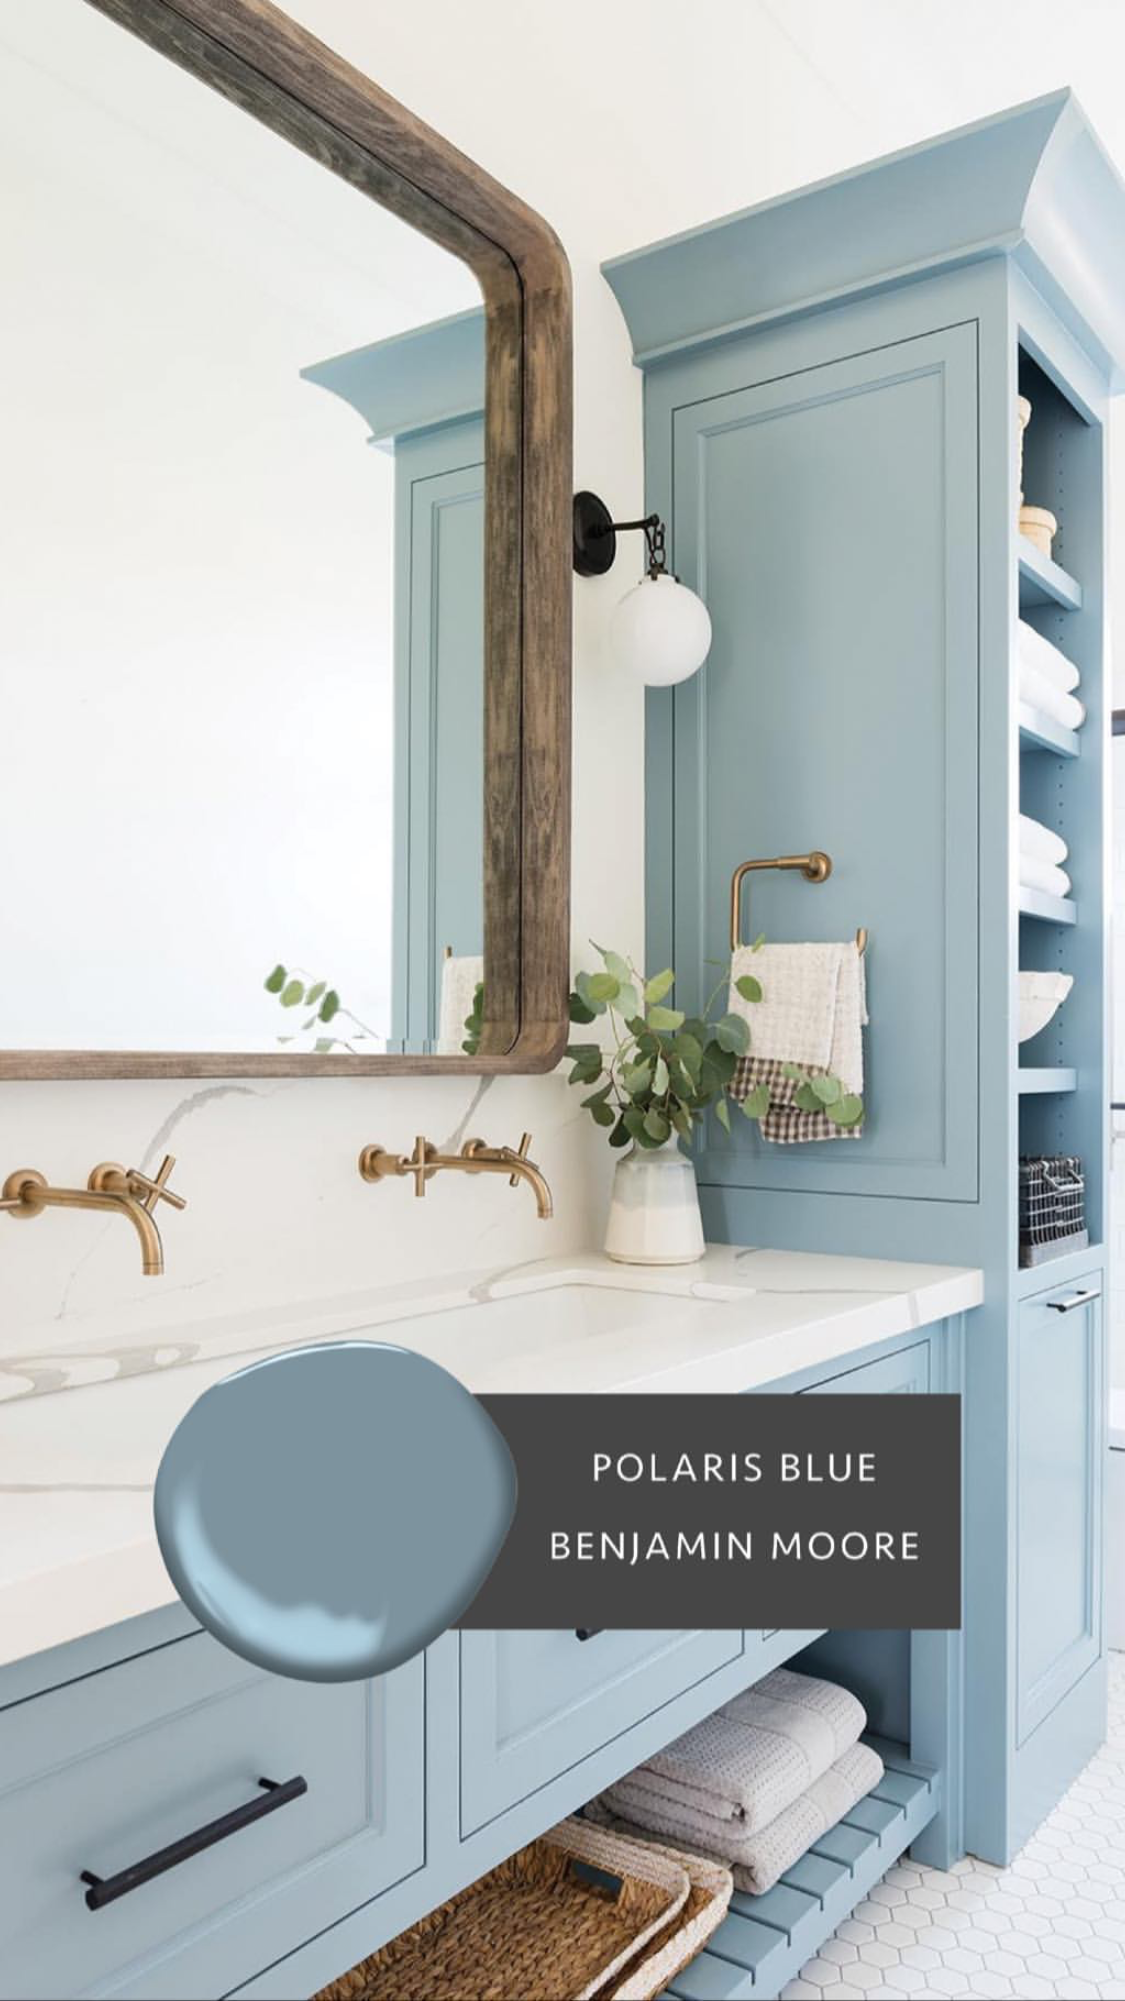 Pin By Natalie Palmer On Home Bathroom Interior Home Paint Colors For Home